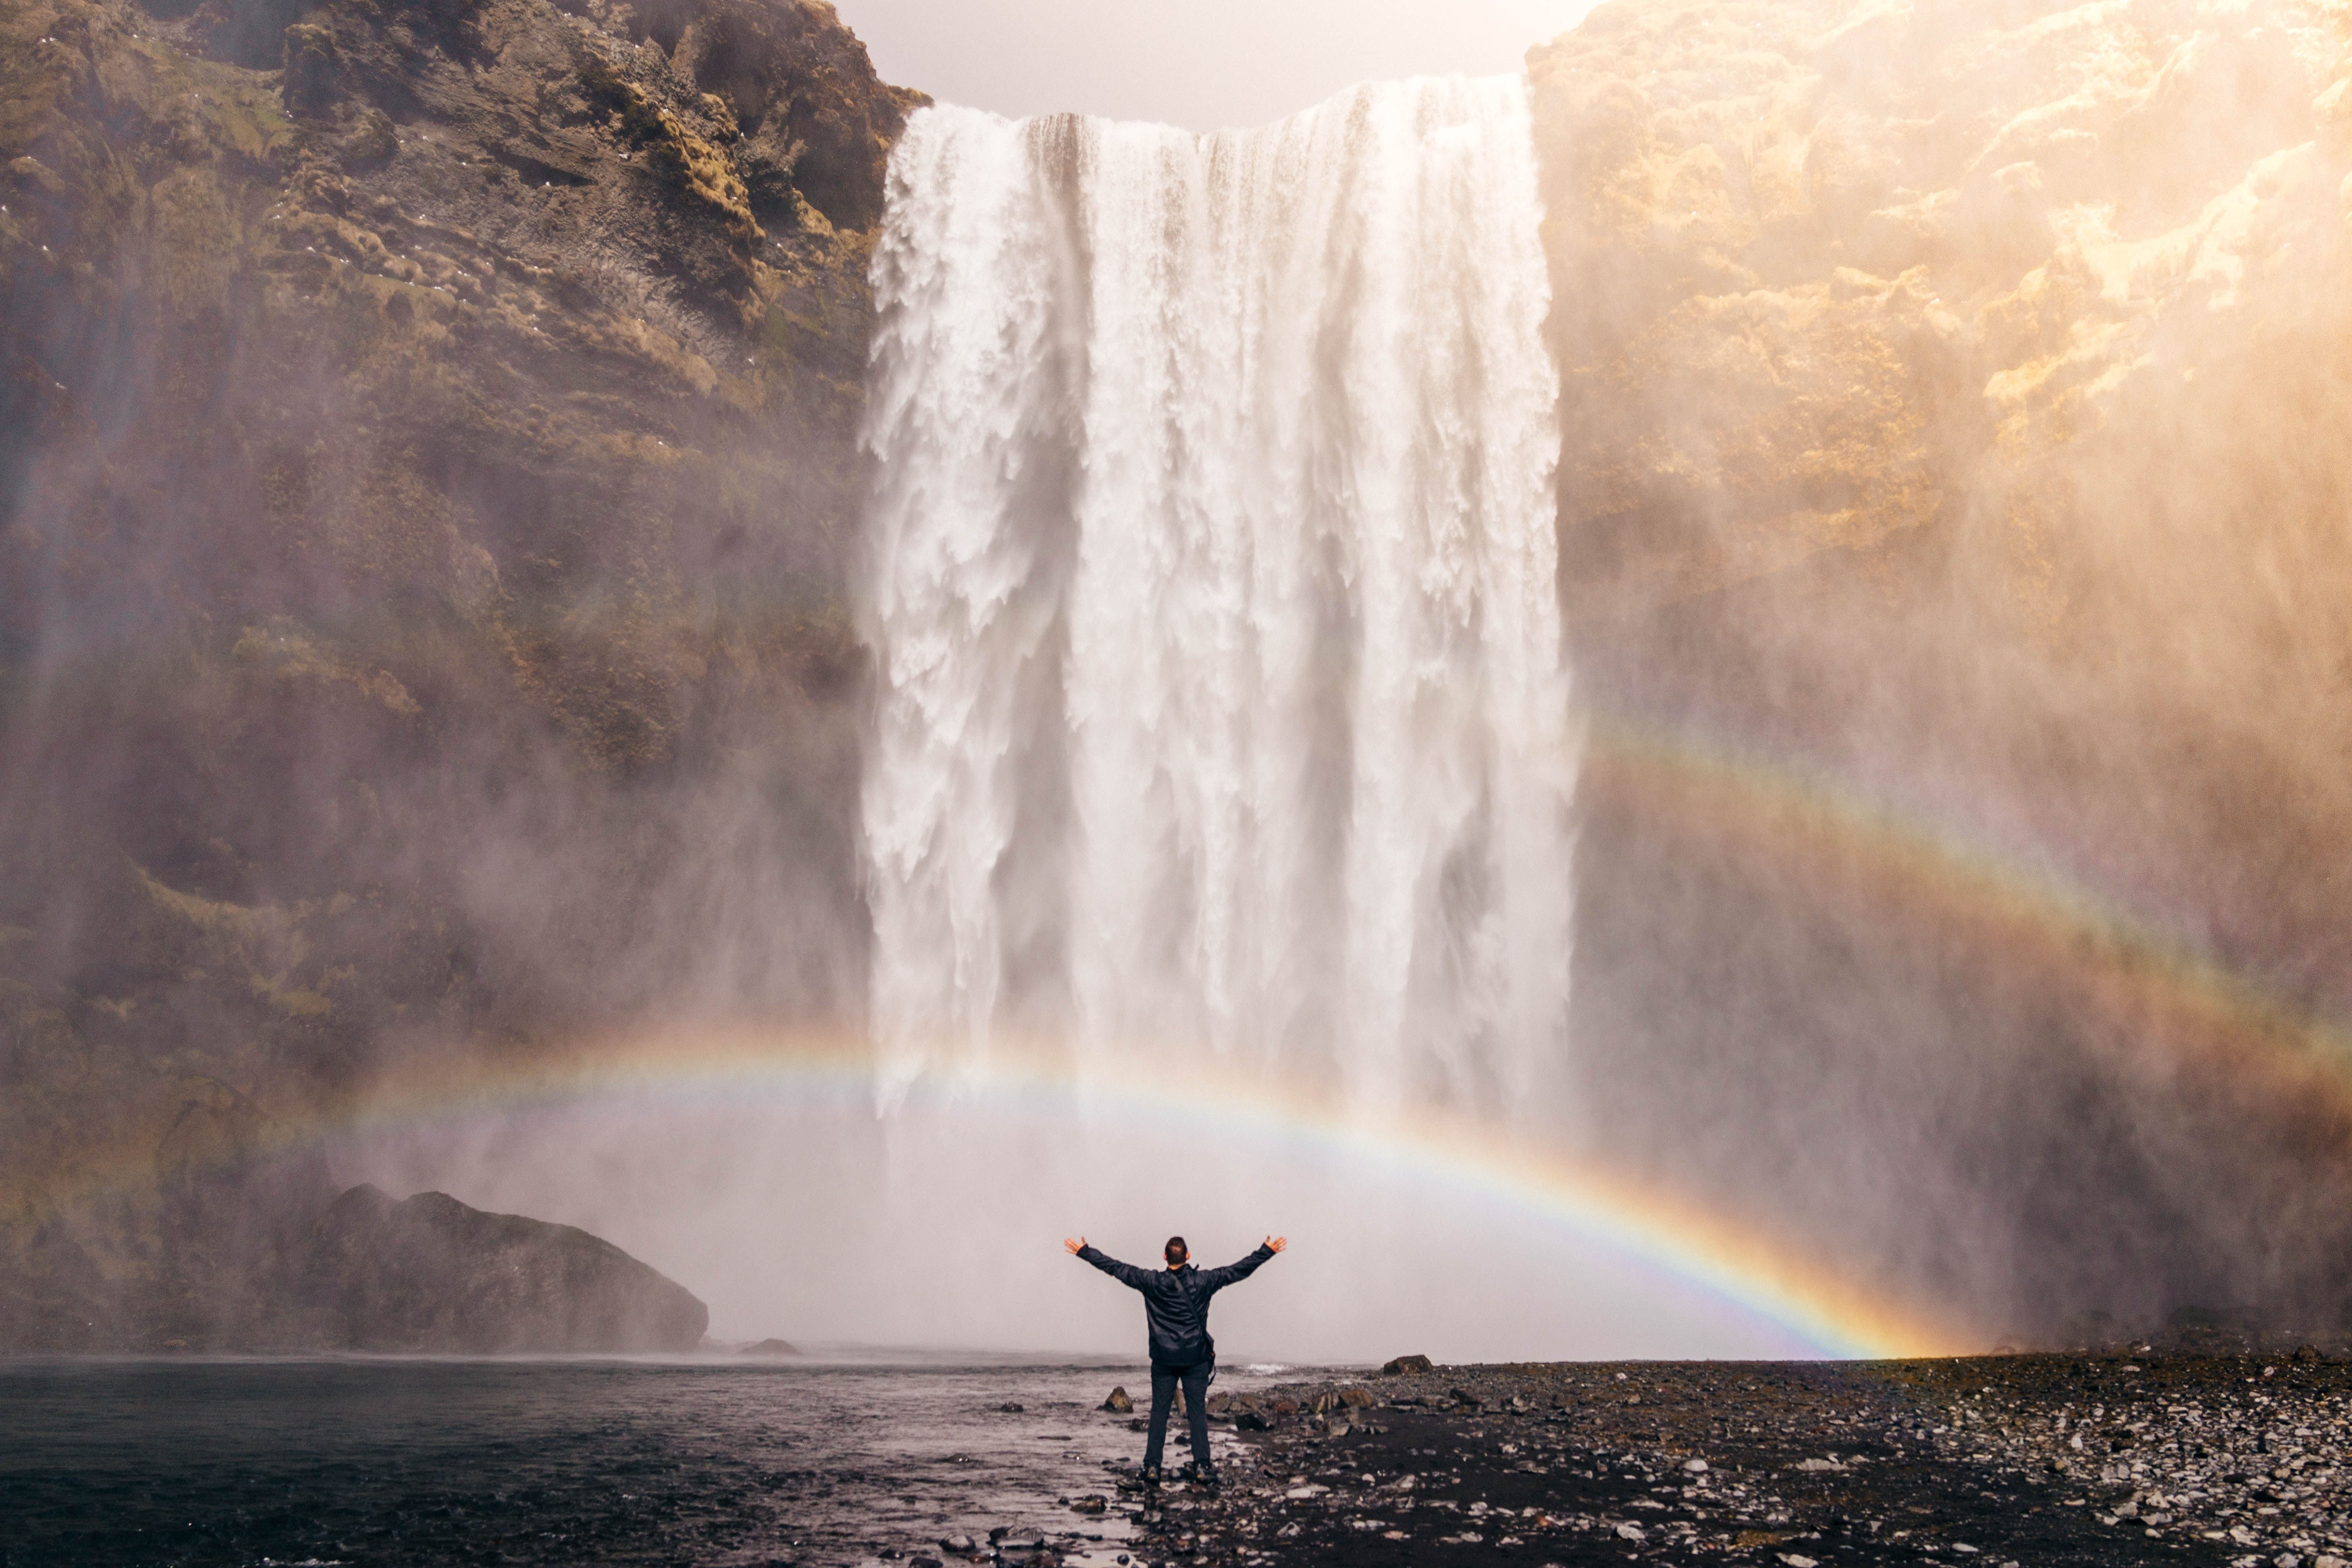 Person standing in front of a waterfall with a double rainbow